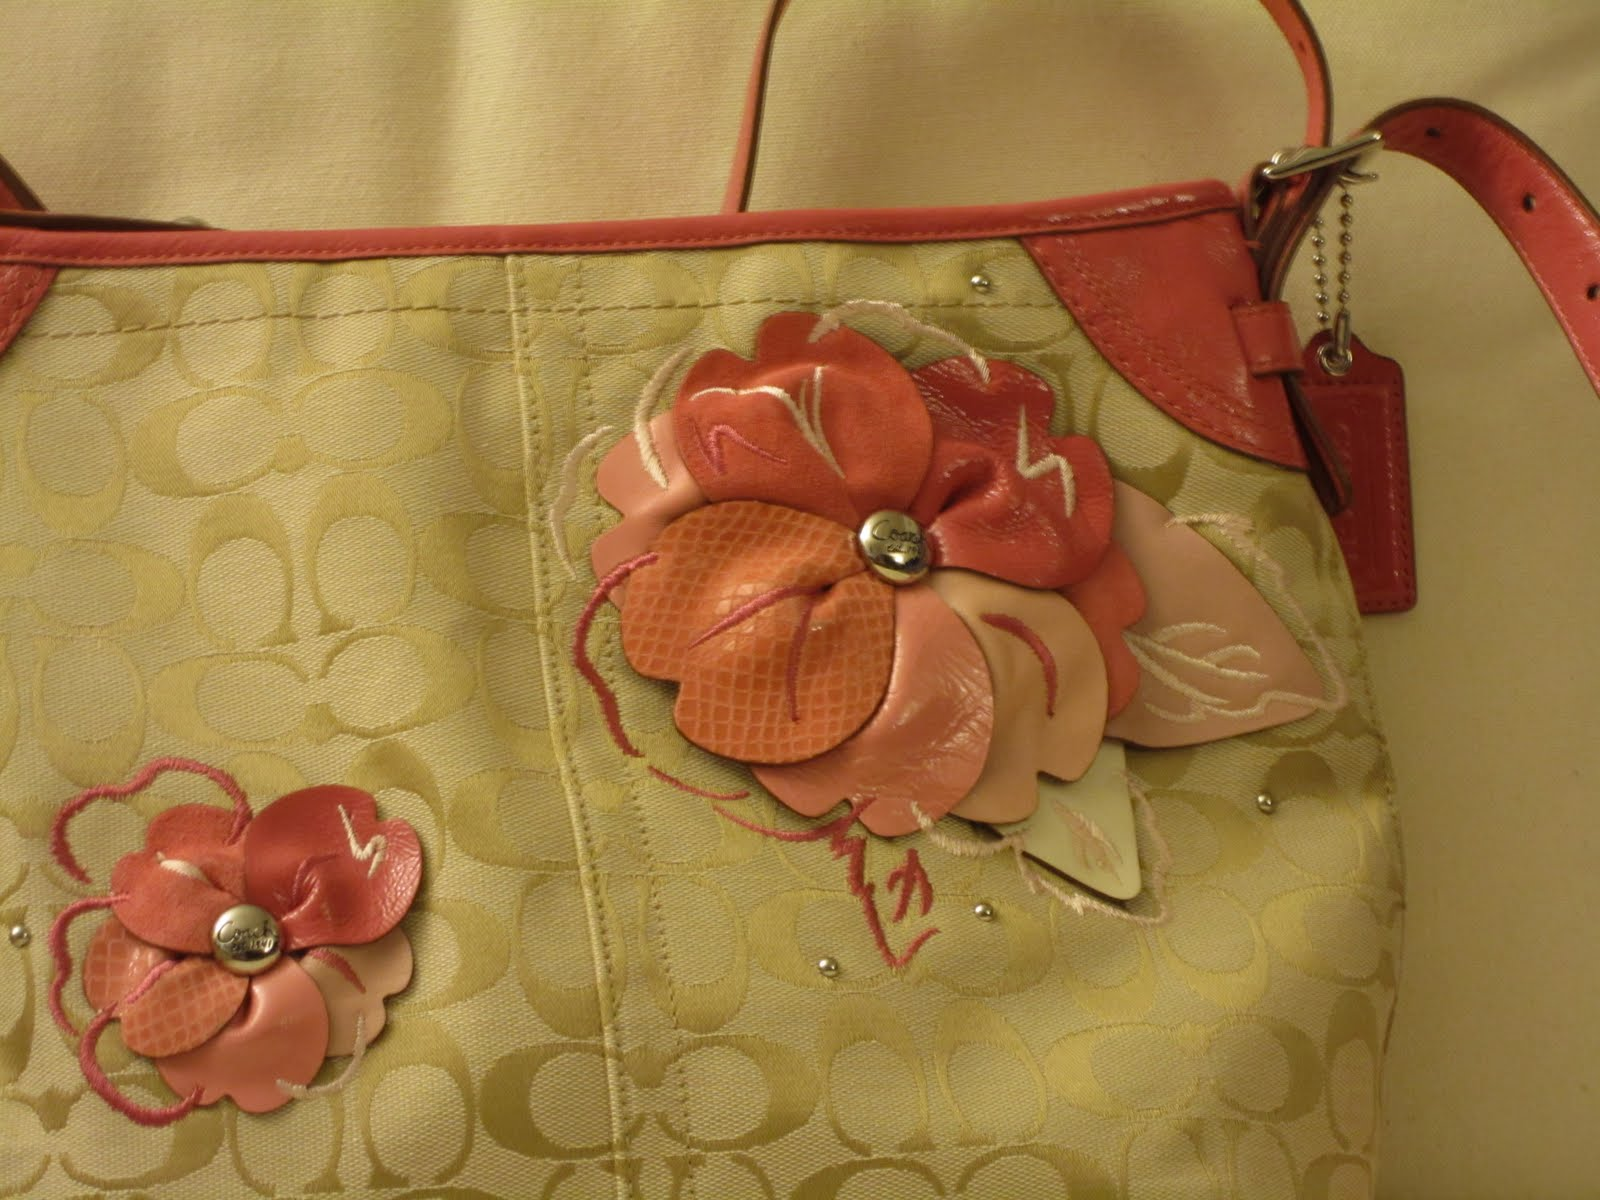 I buy you buy i saved you saved!: coach signature floral applique